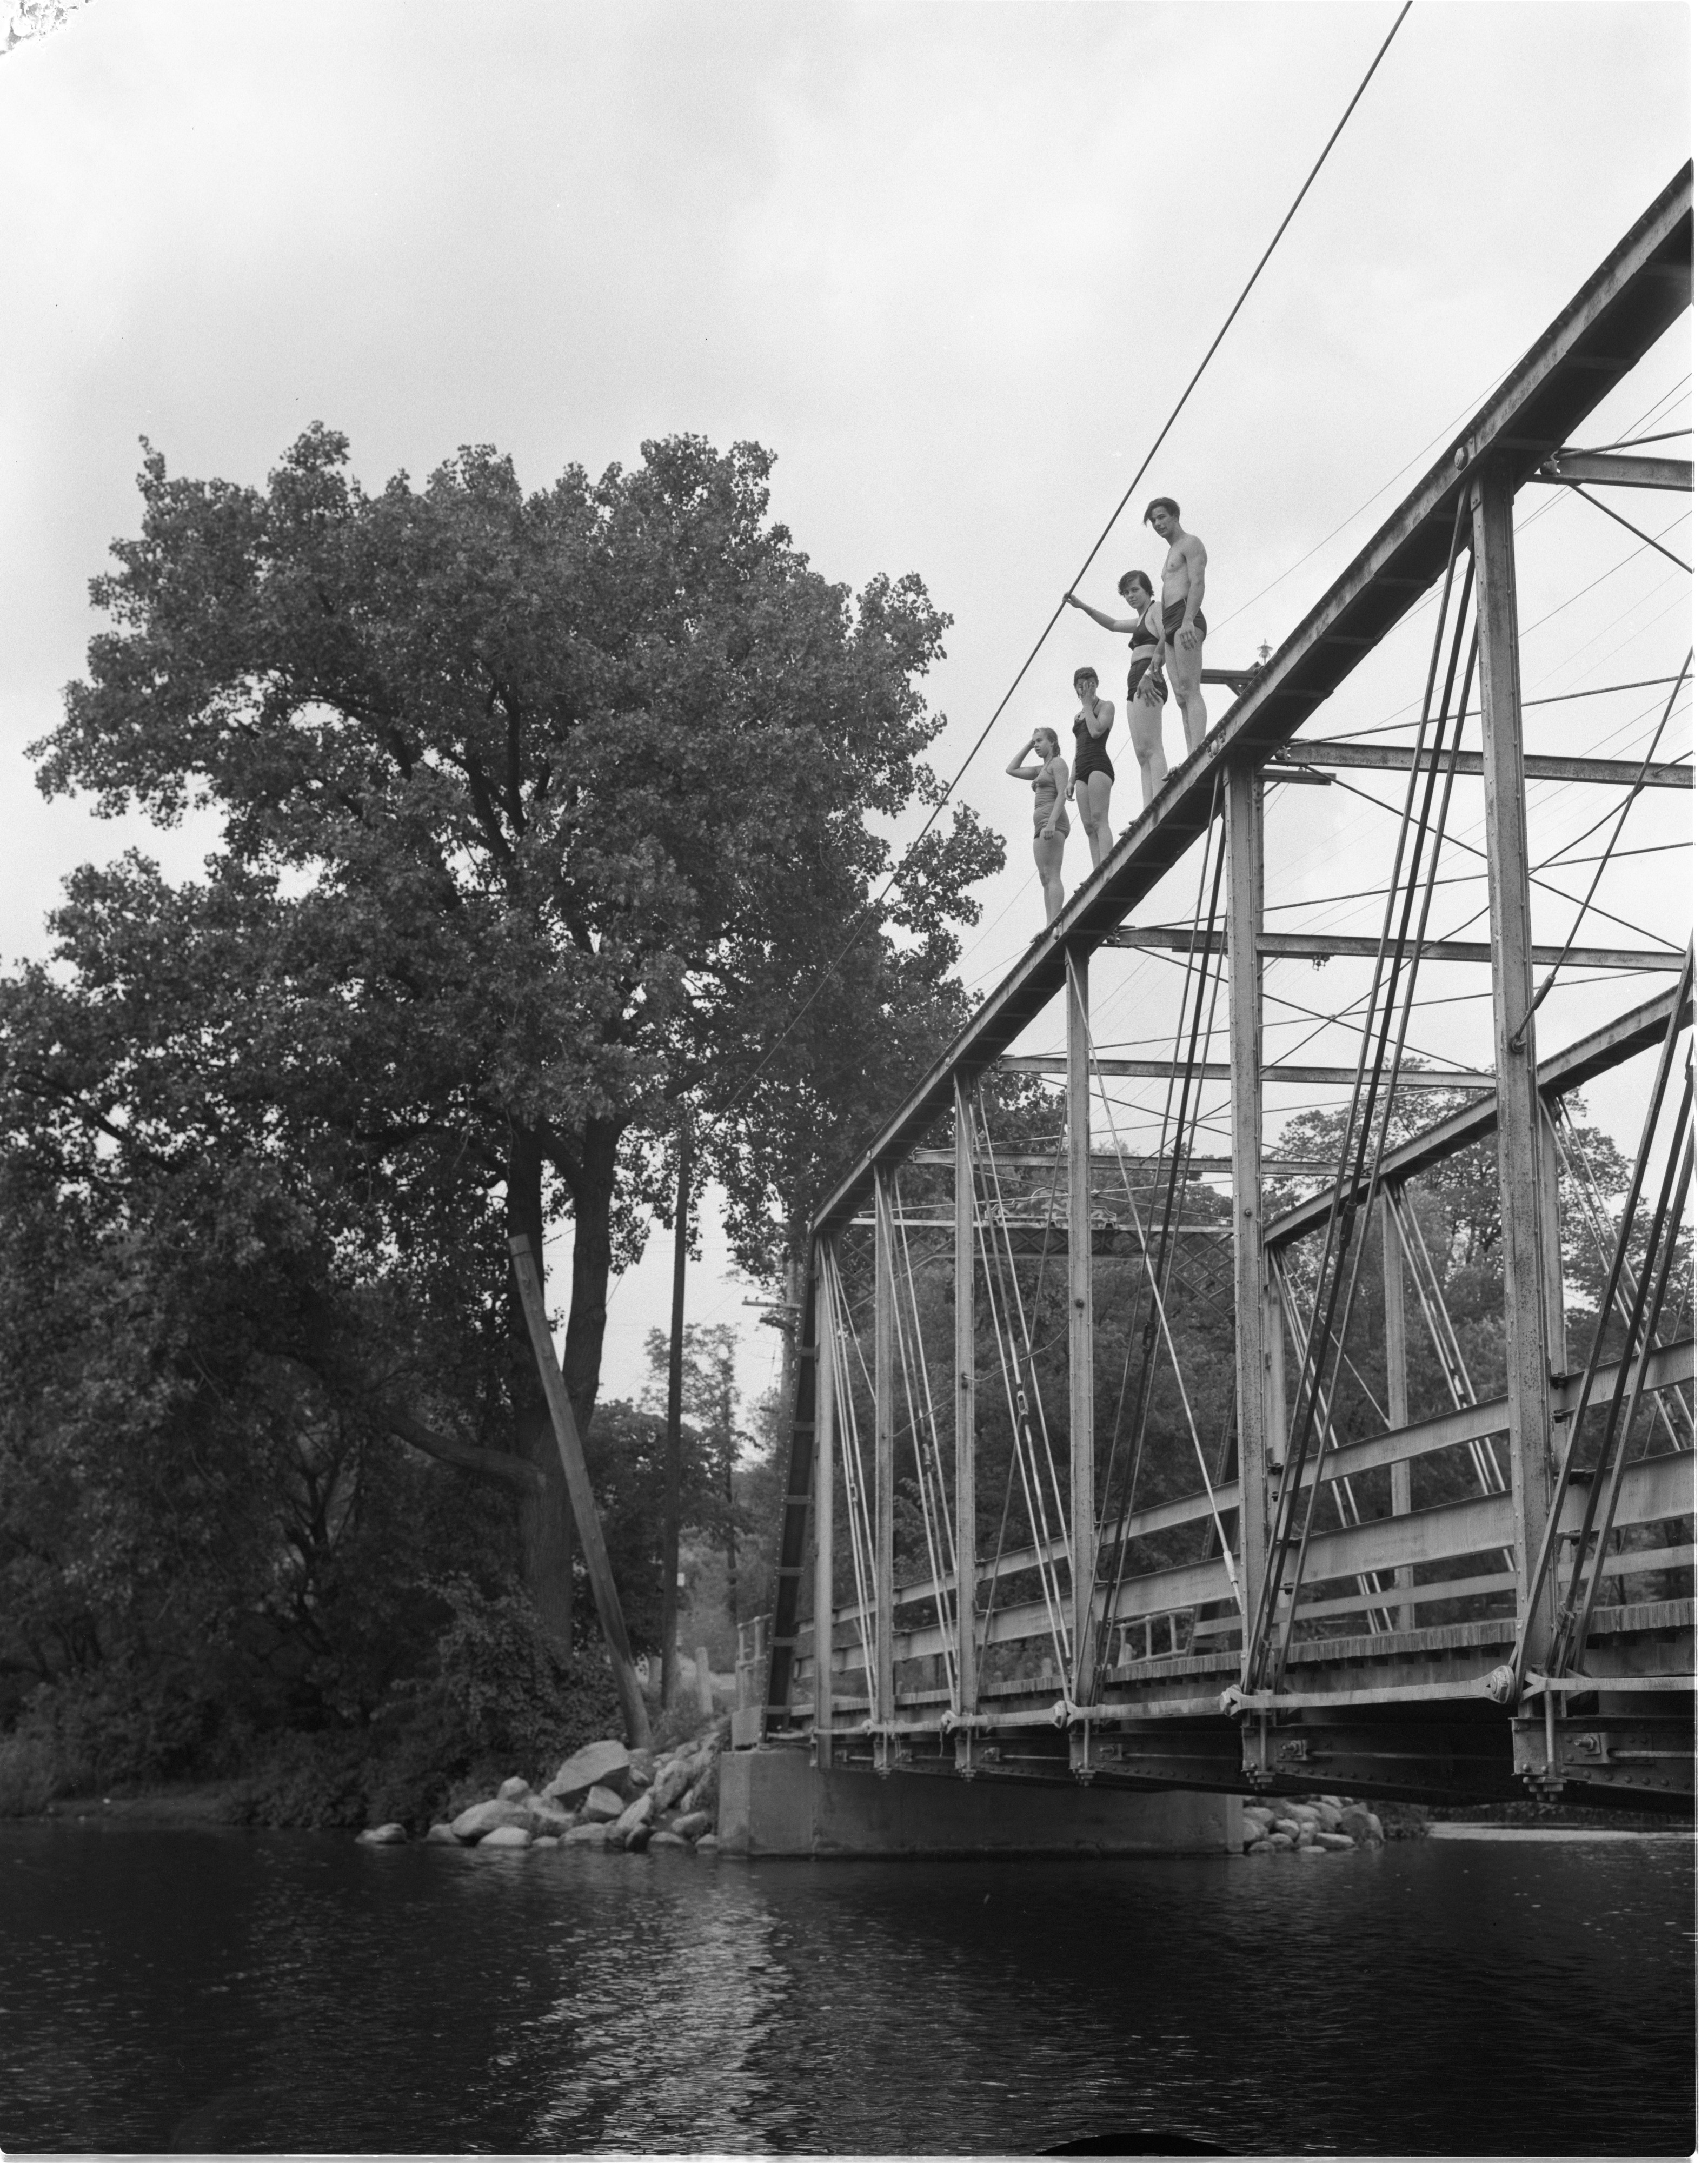 Swimmers Stand Atop The Foster Bridge, July 1955 image